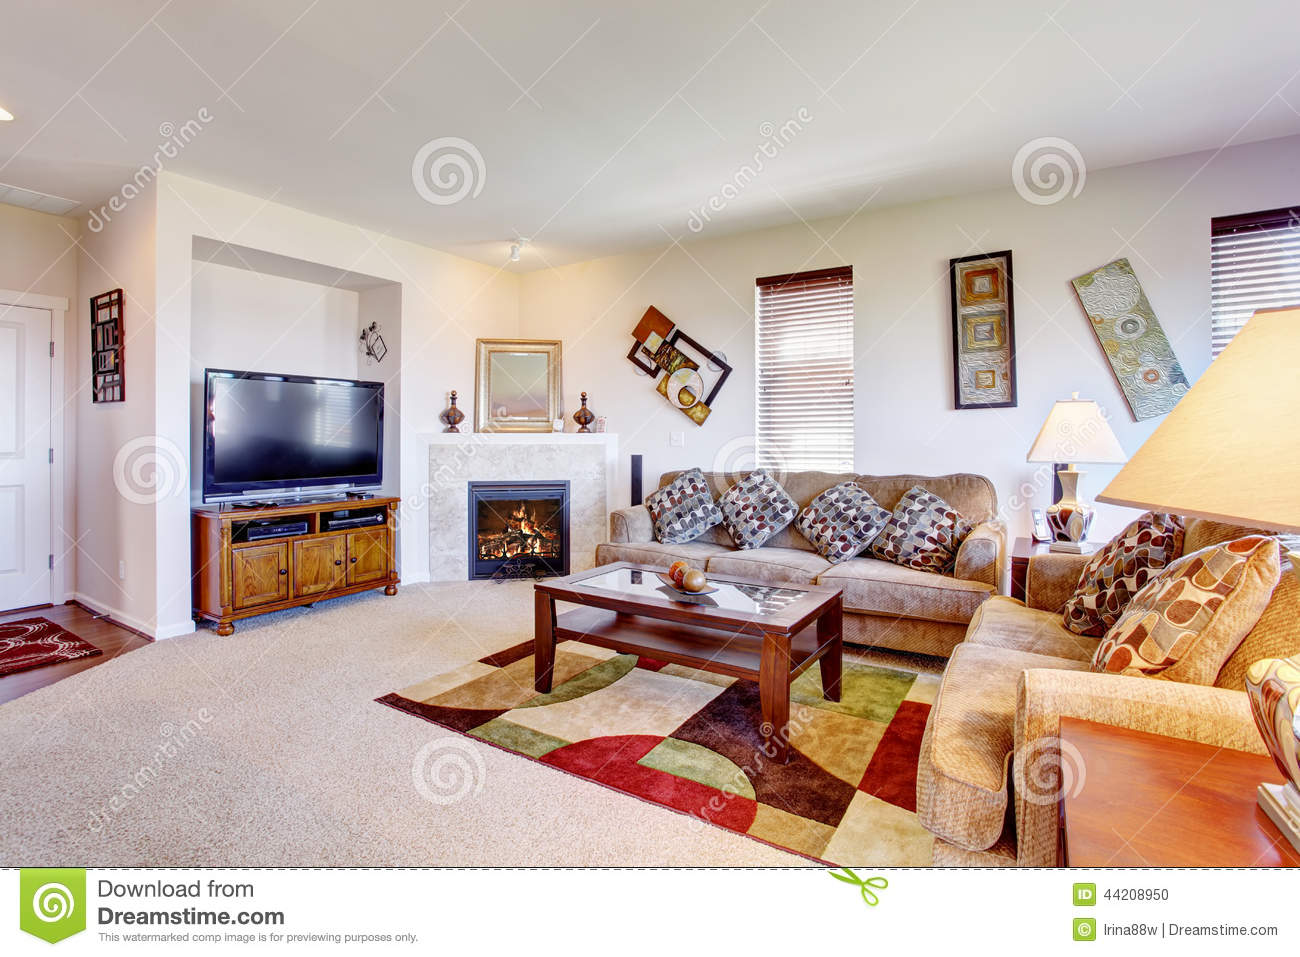 White Living Room With Fireplace And Colorful Rug Stock Photo ...